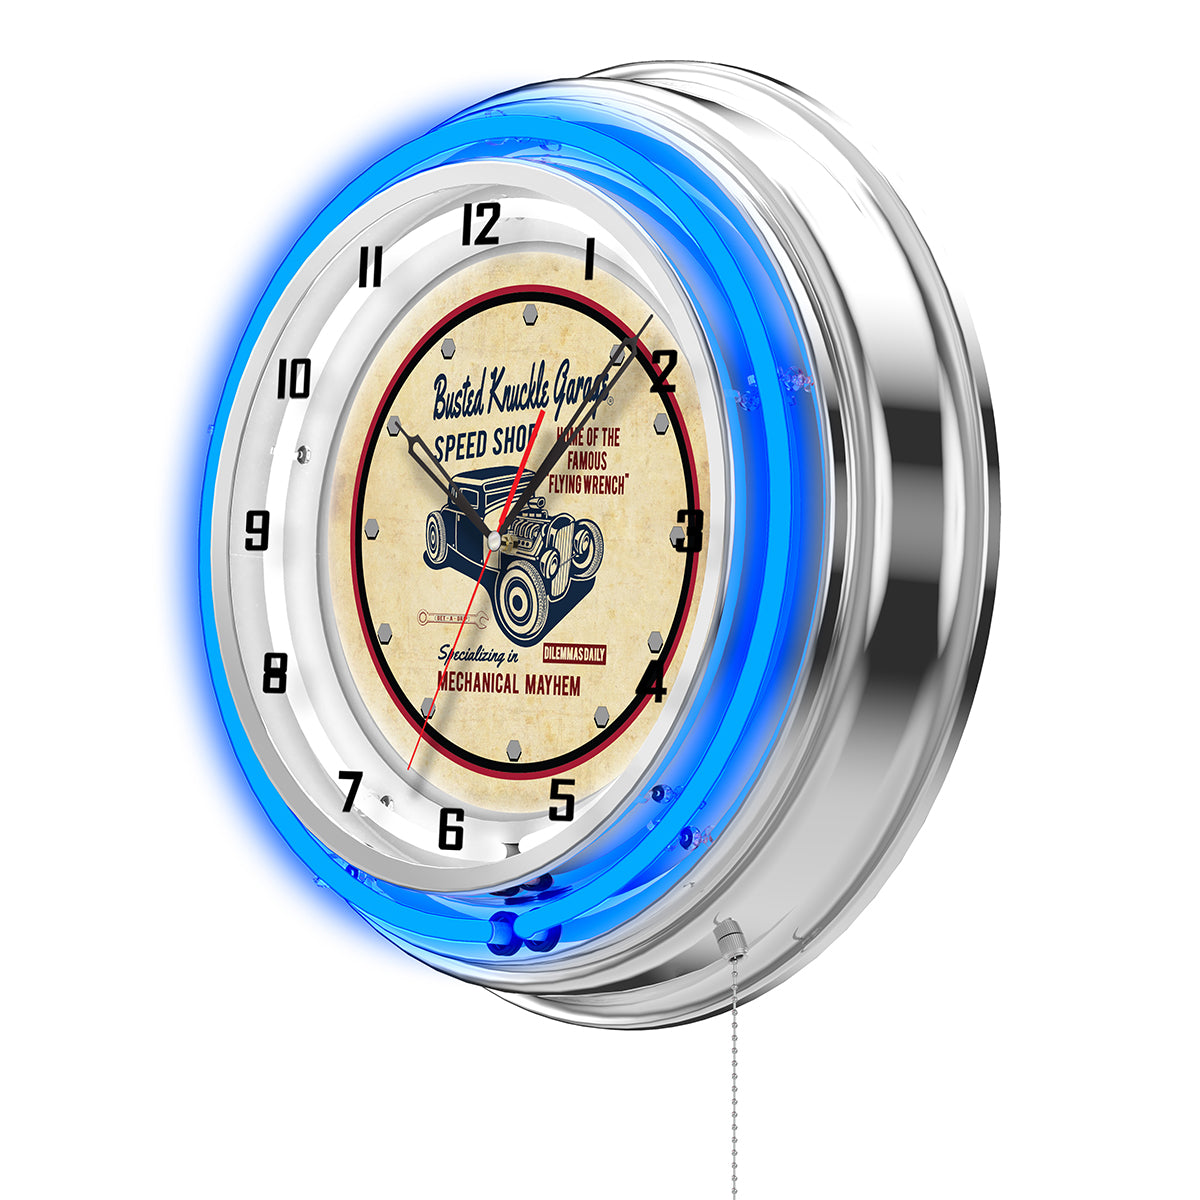 Road Devil Speed Shop Clock - Blue Neon